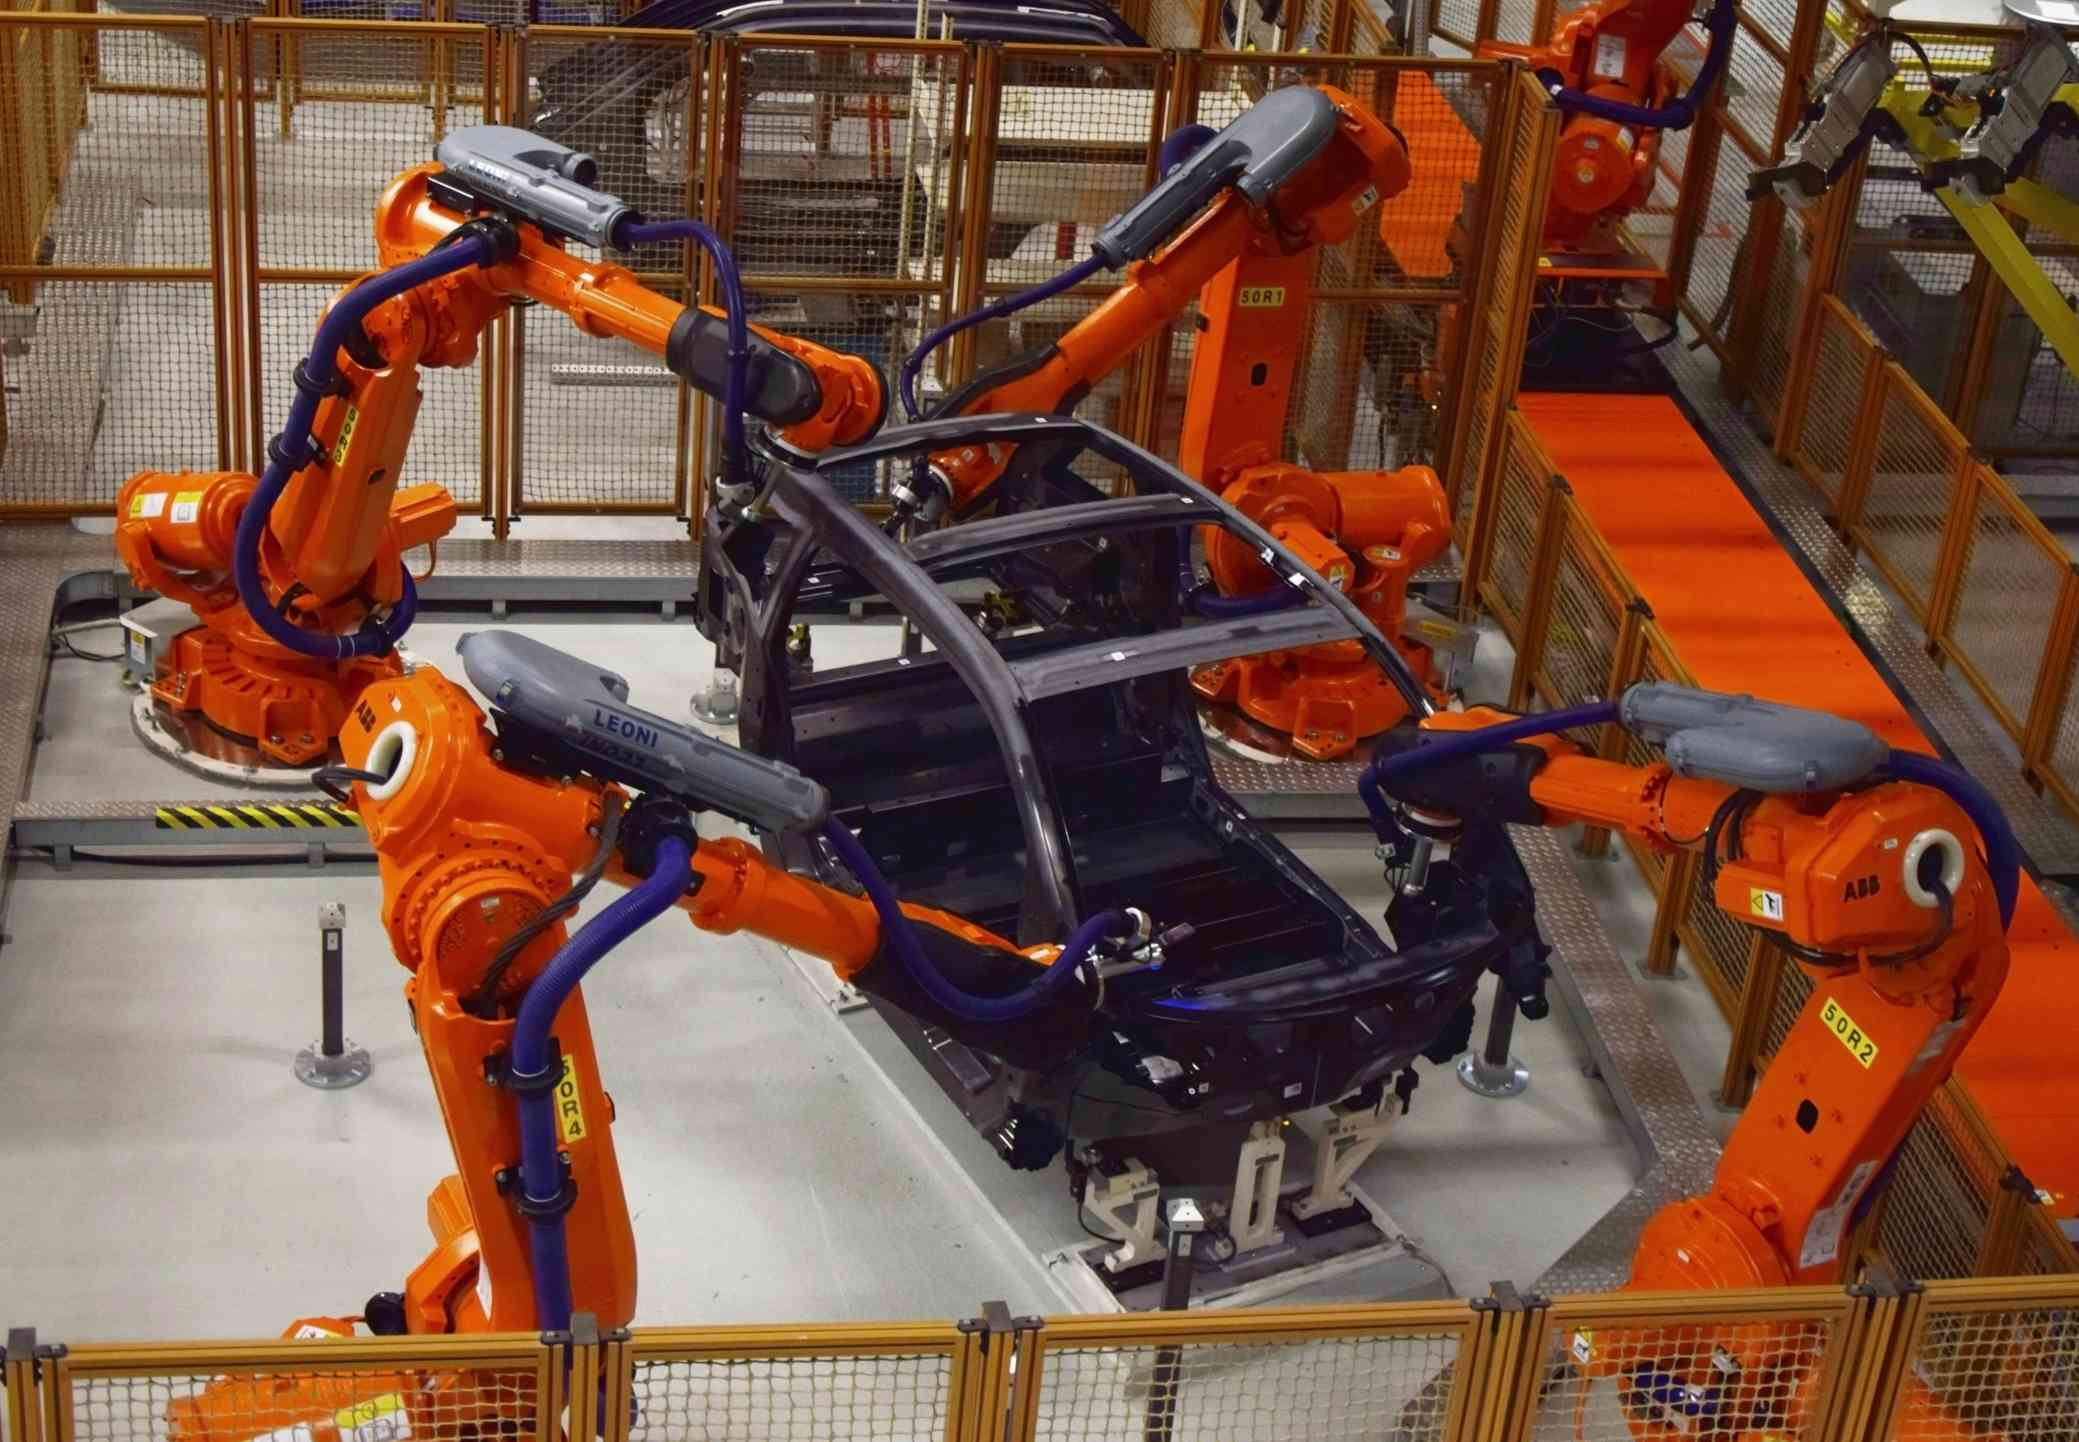 Production of the electric BMW i3